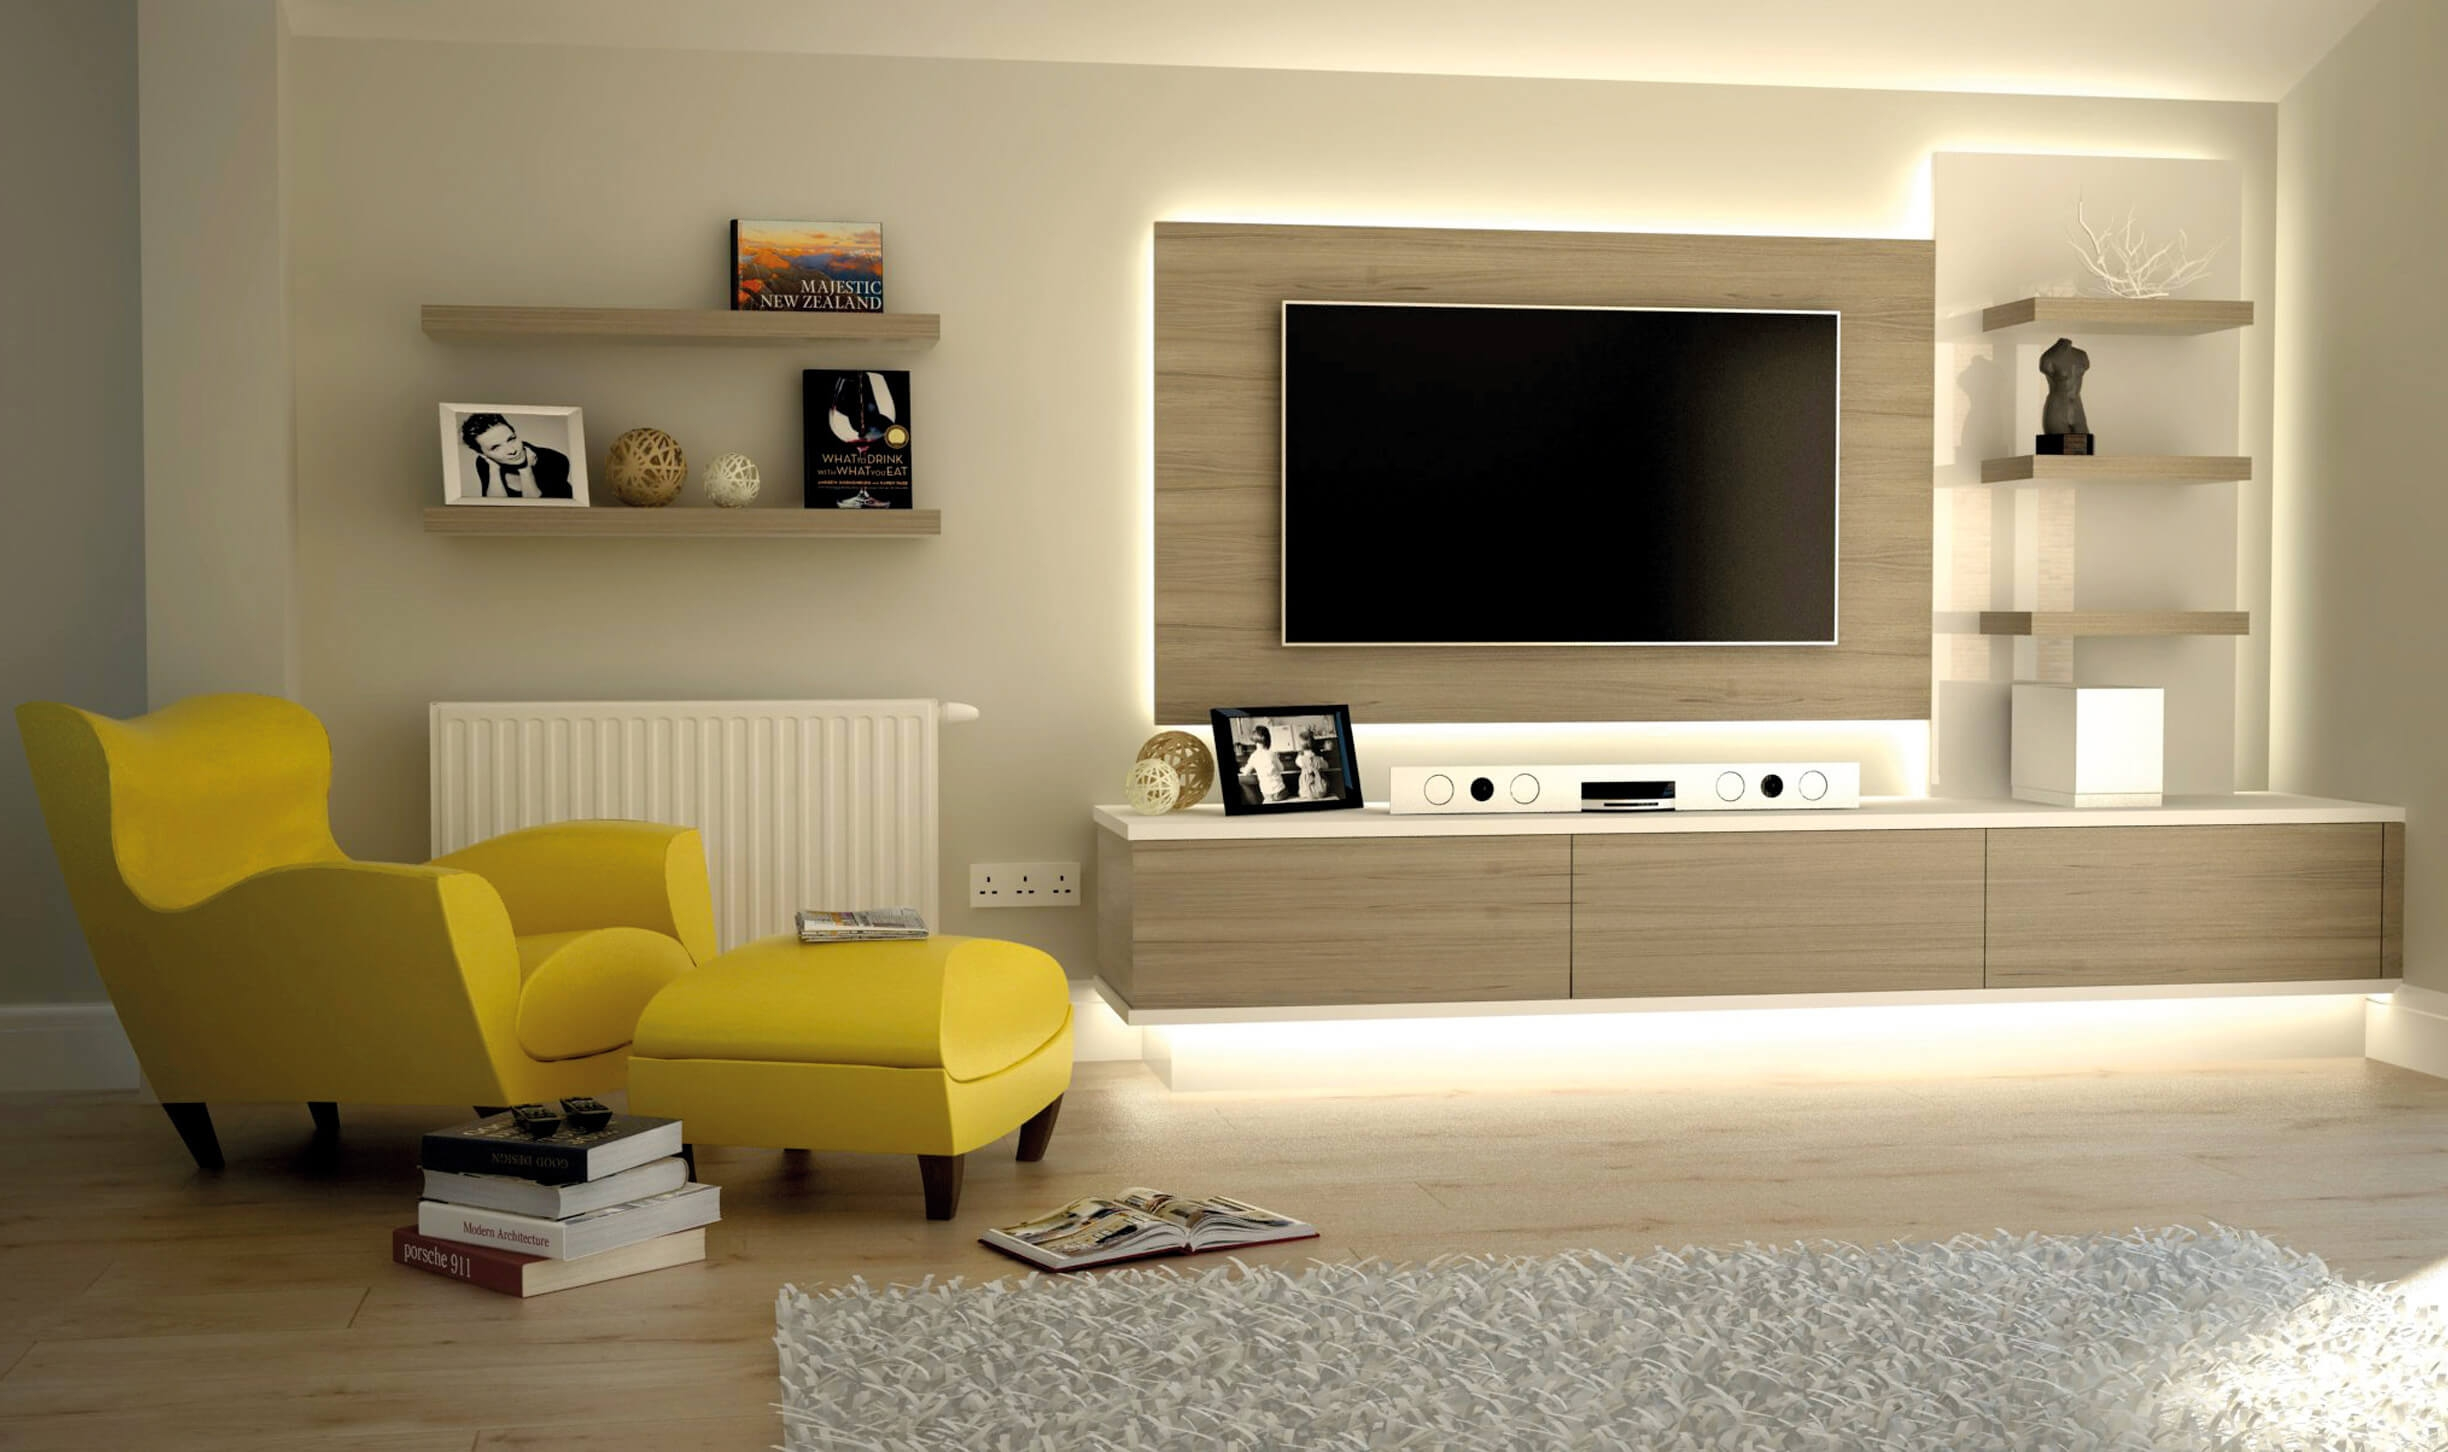 Bespoke Tv Cabinets Bookcases And Storage Units For Over 50 Within Bespoke Tv Cabinet (View 3 of 15)